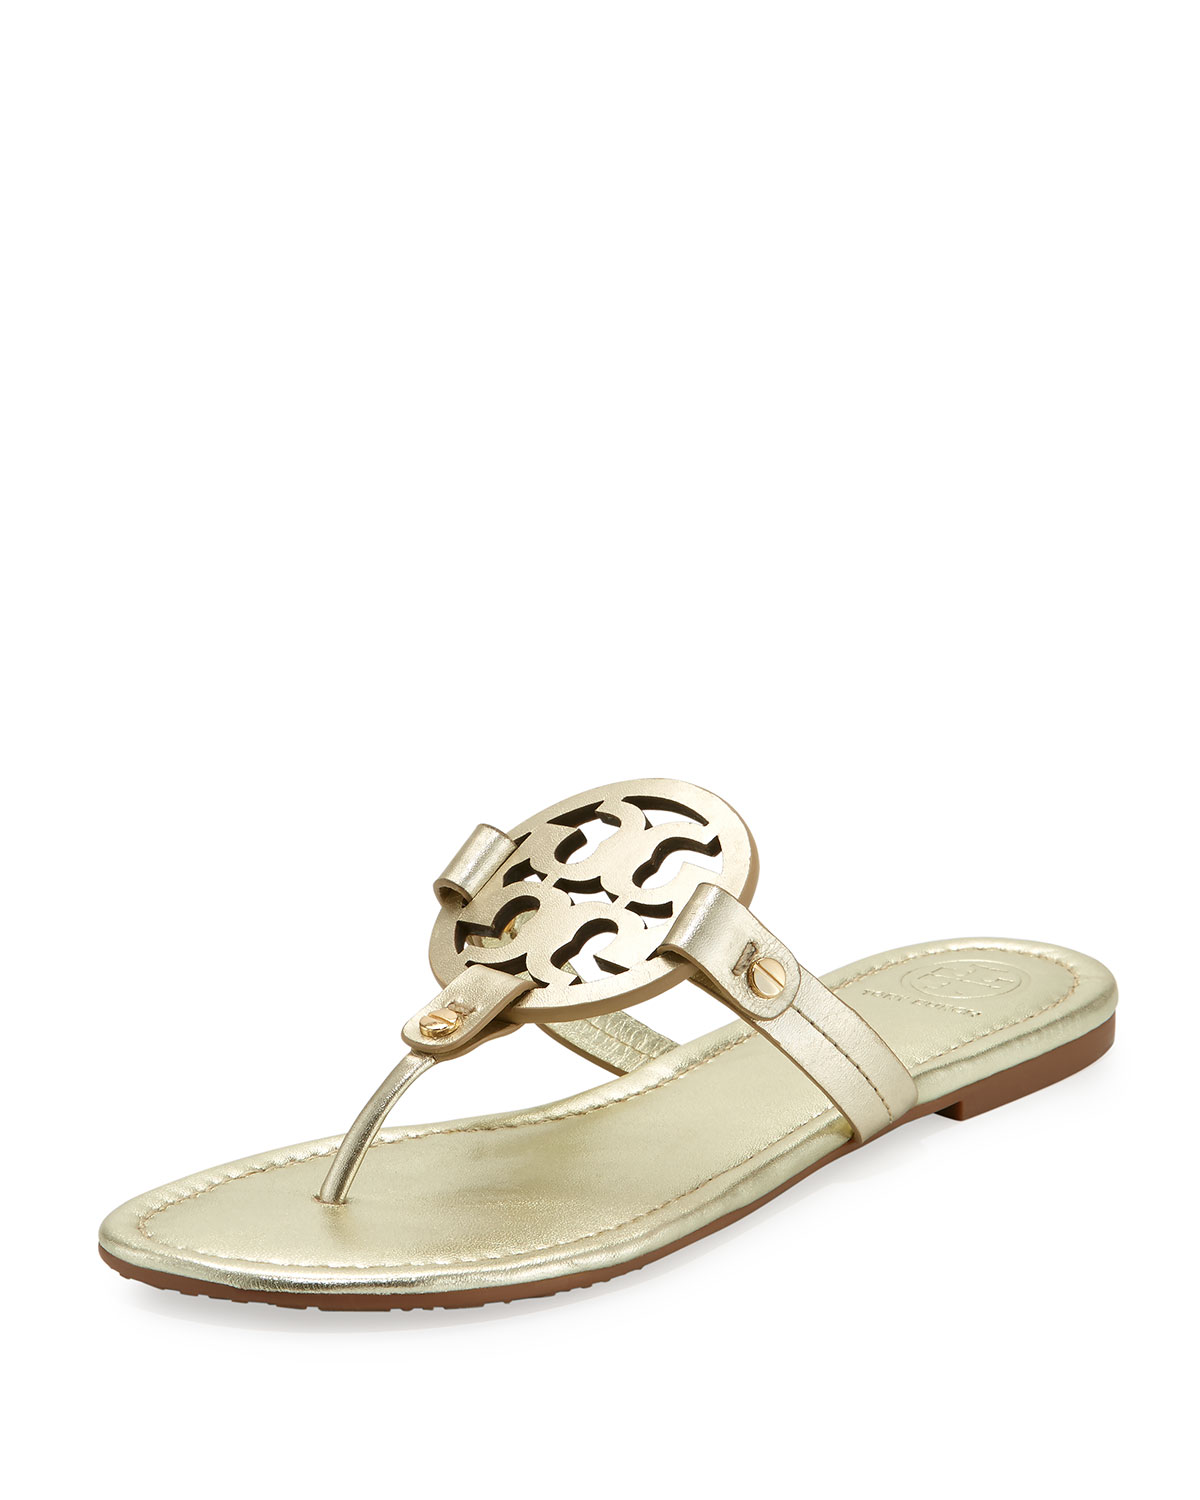 49233a715 Tory Burch Miller Leather Logo Sandal | Neiman Marcus